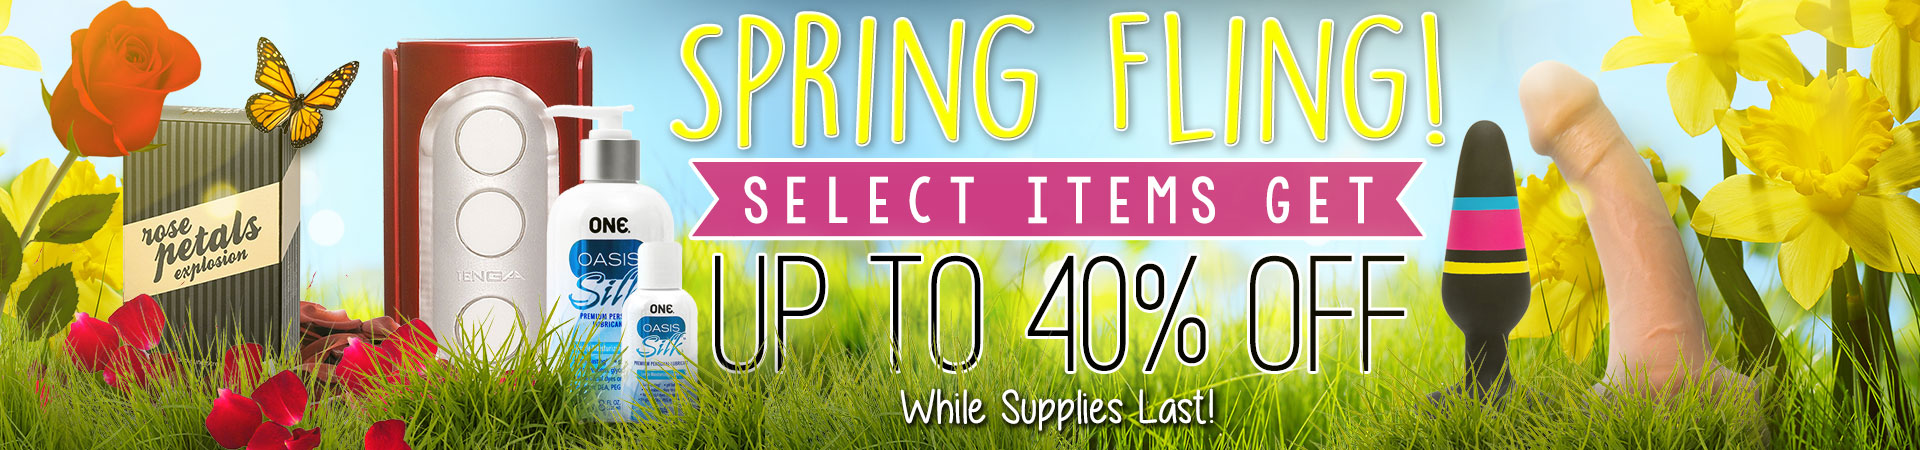 Shop Our Spring Fling Clearance. Up To 40% Off - These Deals Won't Last!